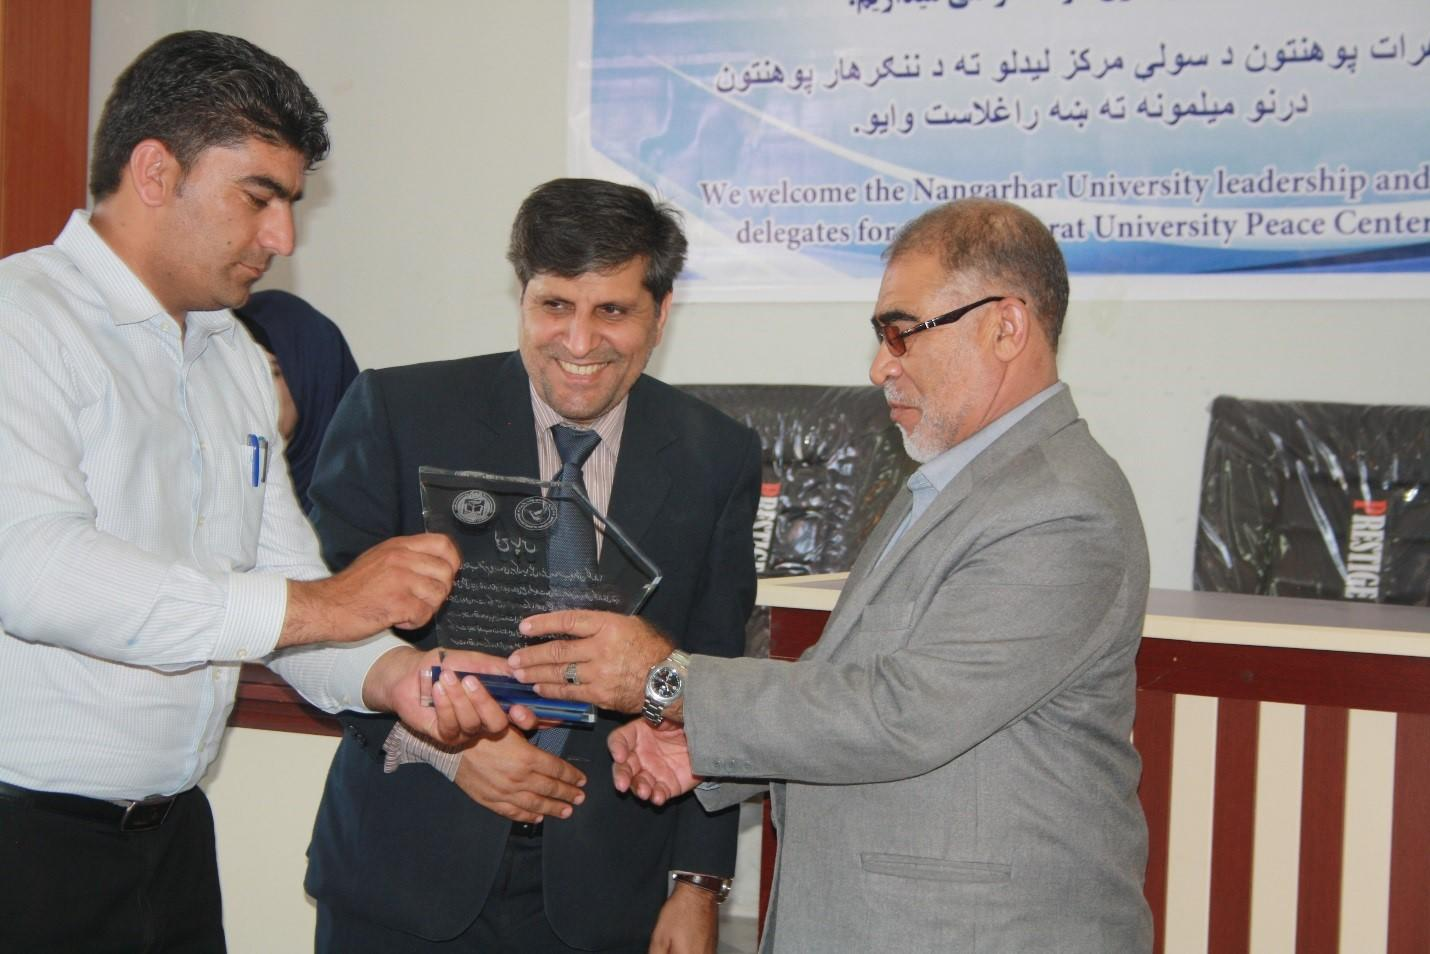 Mr. Babrak Miakhle, the chancellor of Nangarhar University, visited Herat University in August 2016 to recognize the two universities collaboration in regards to institutionalizing peace education.